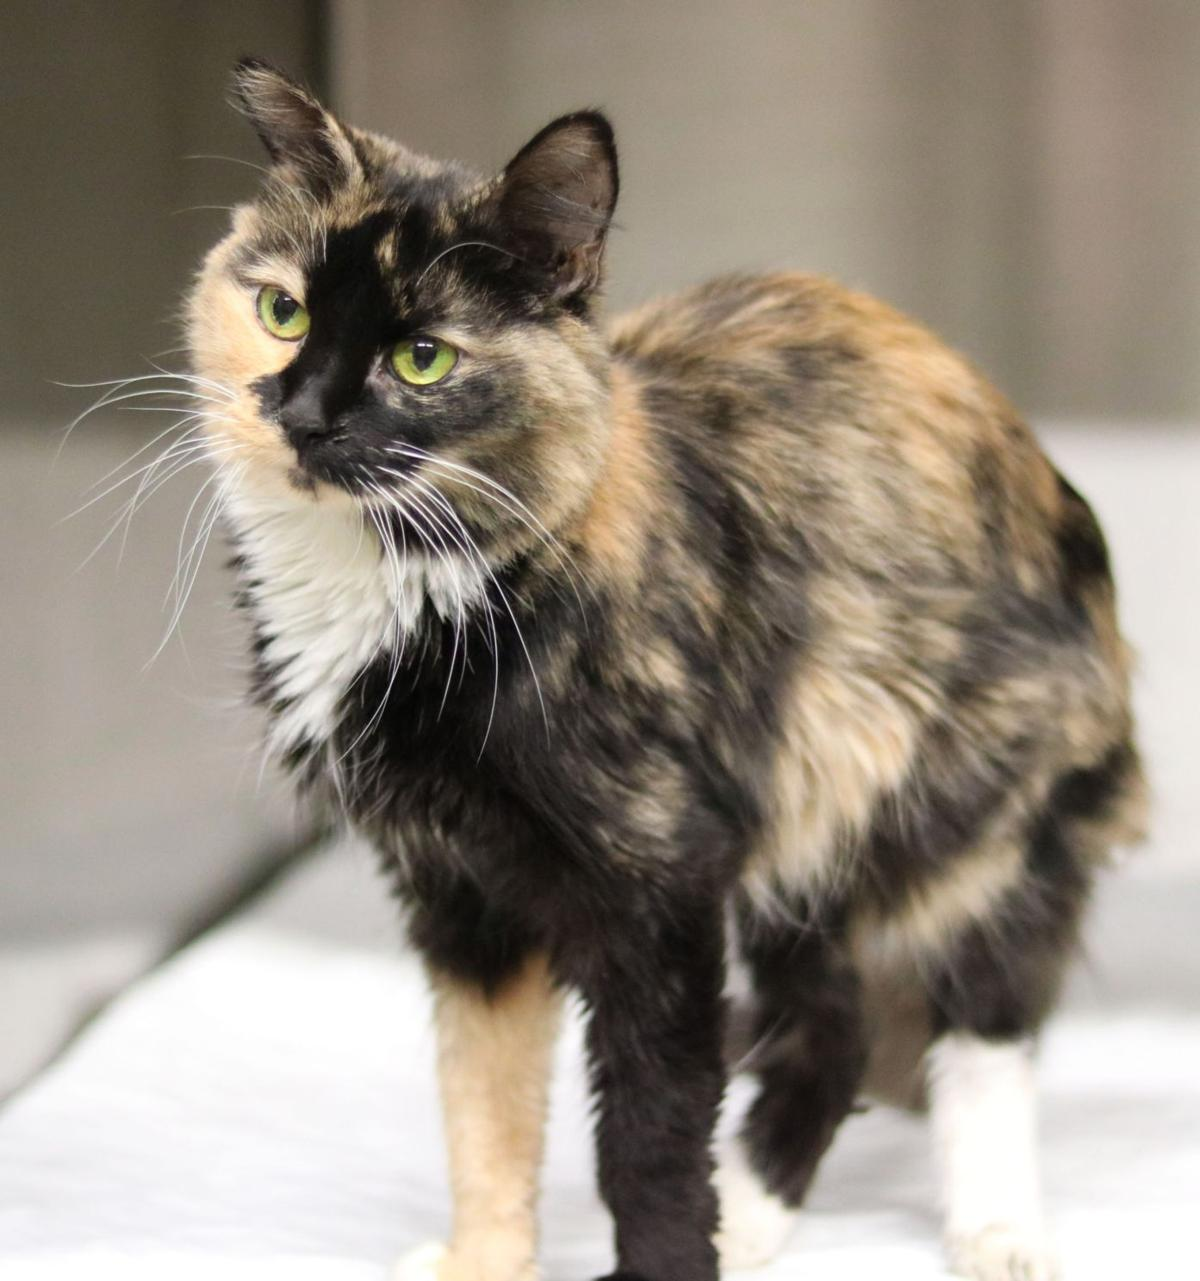 SJ Cat of the Week - October 30, 2019 edition